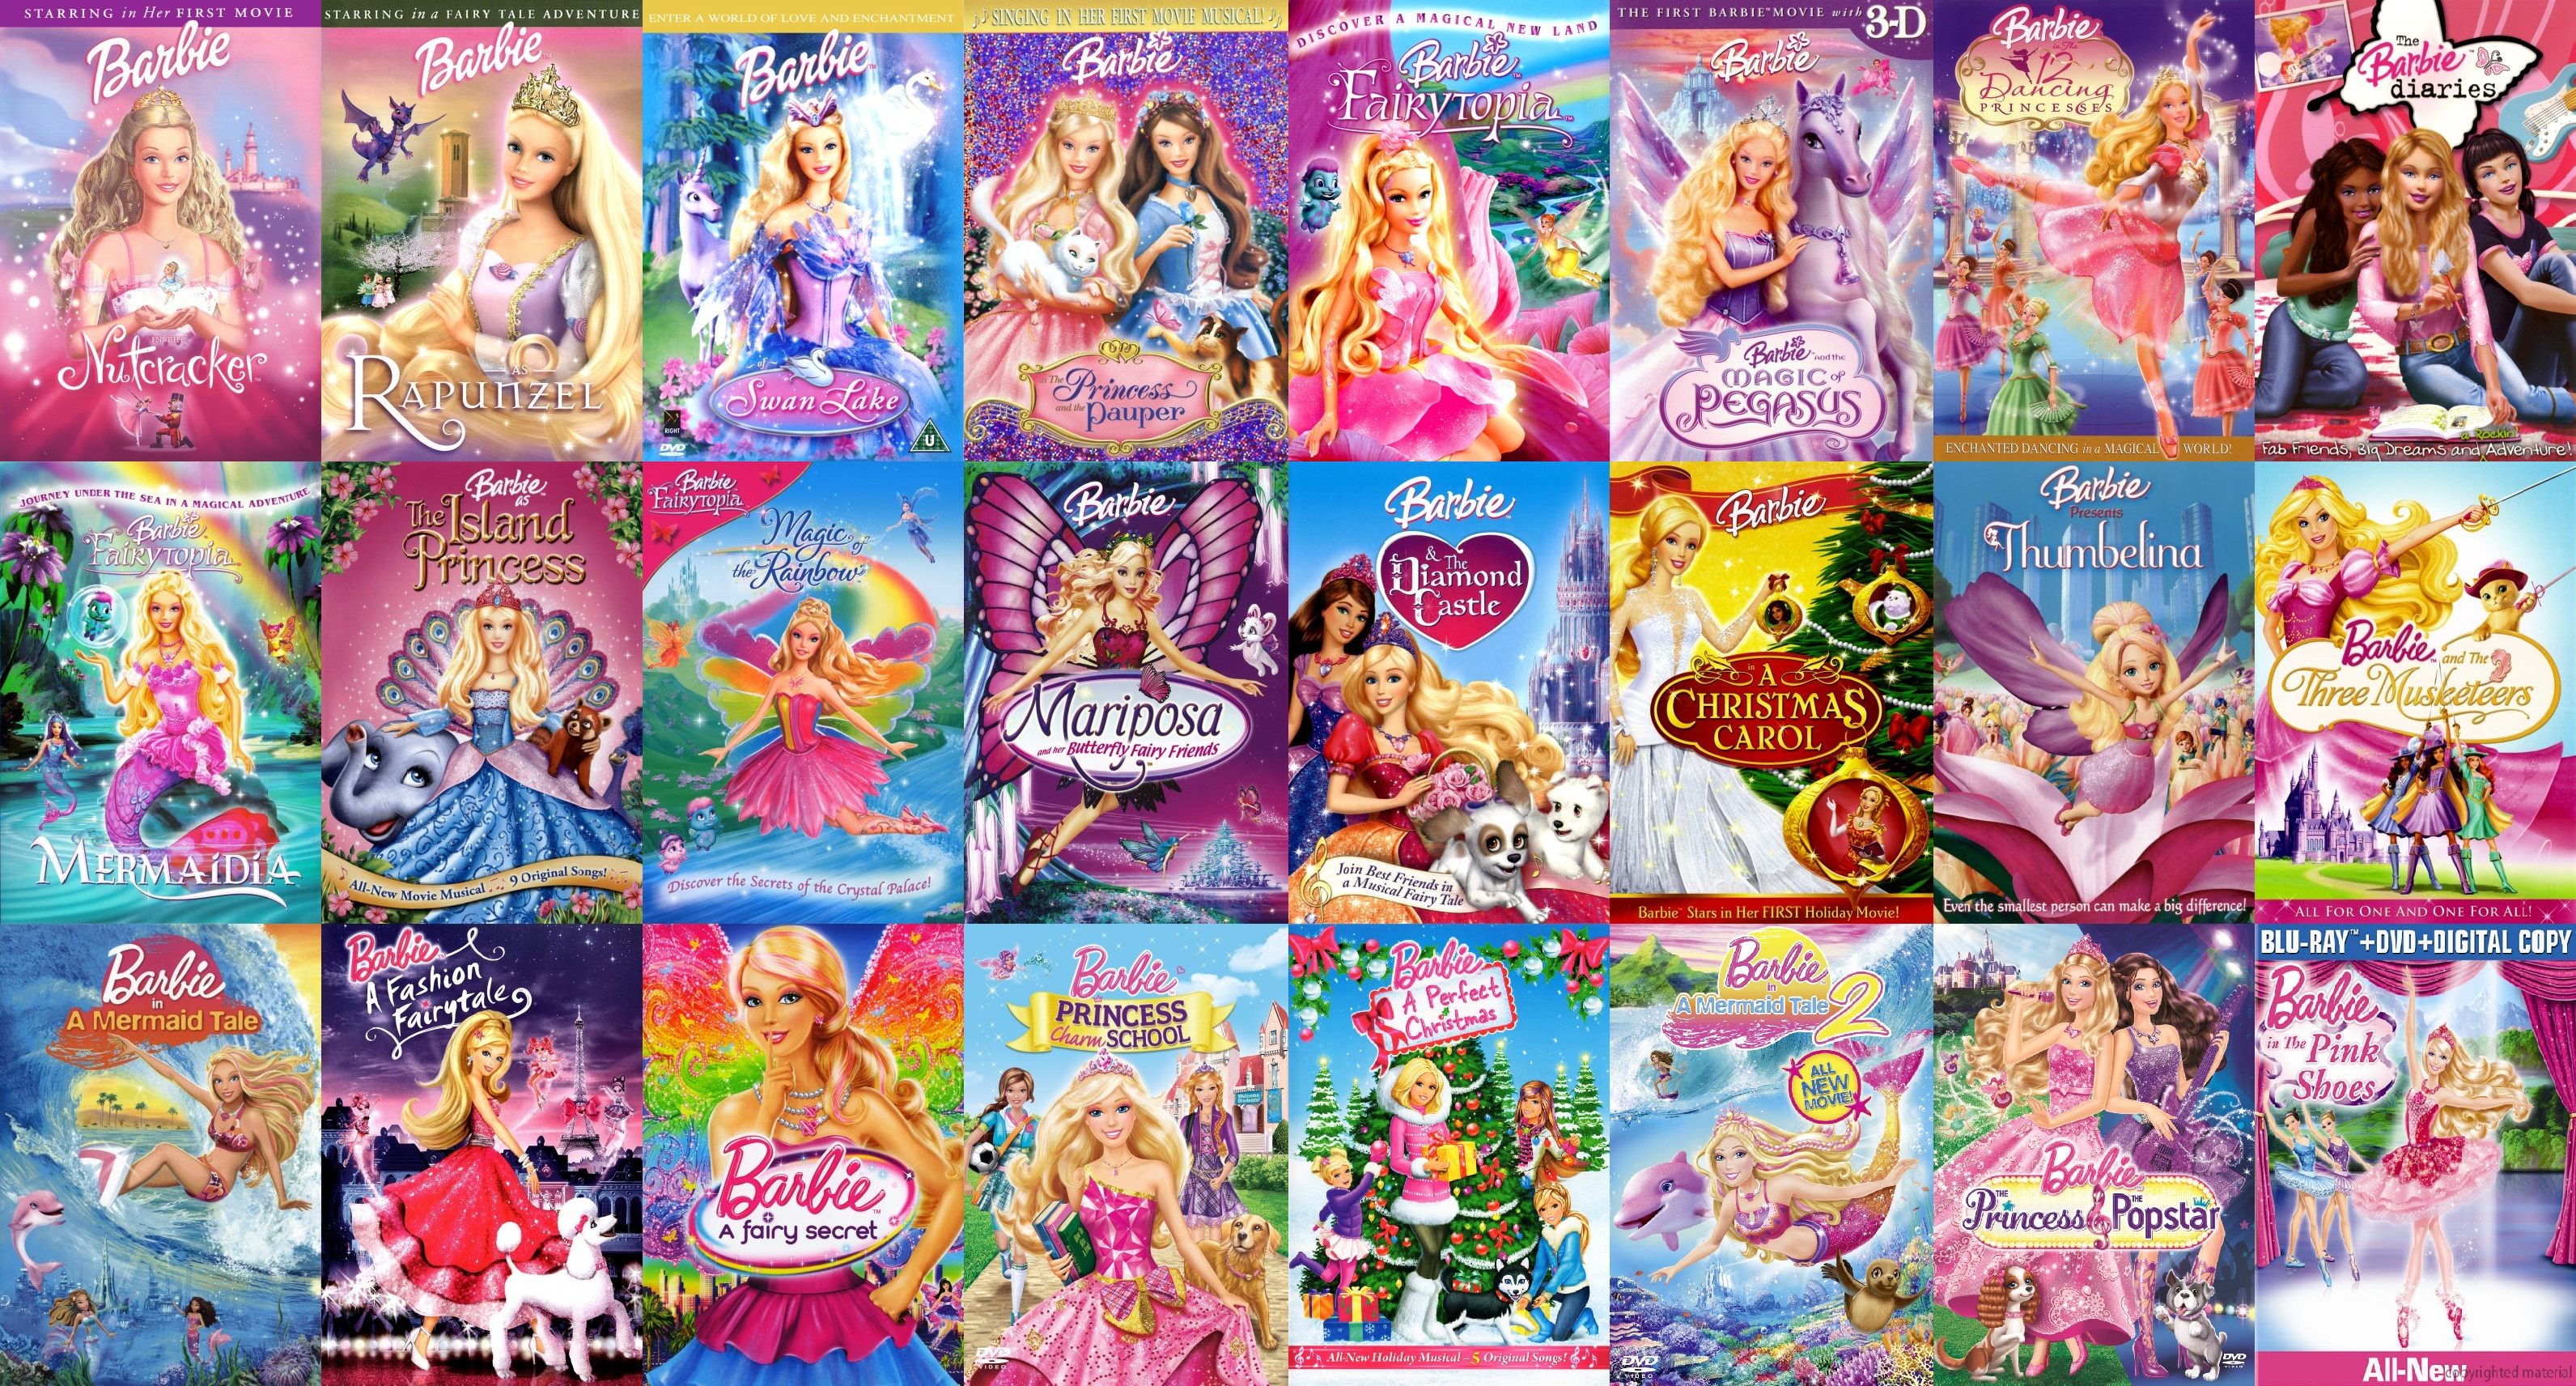 complete list of barbie movies - how many have you seen?